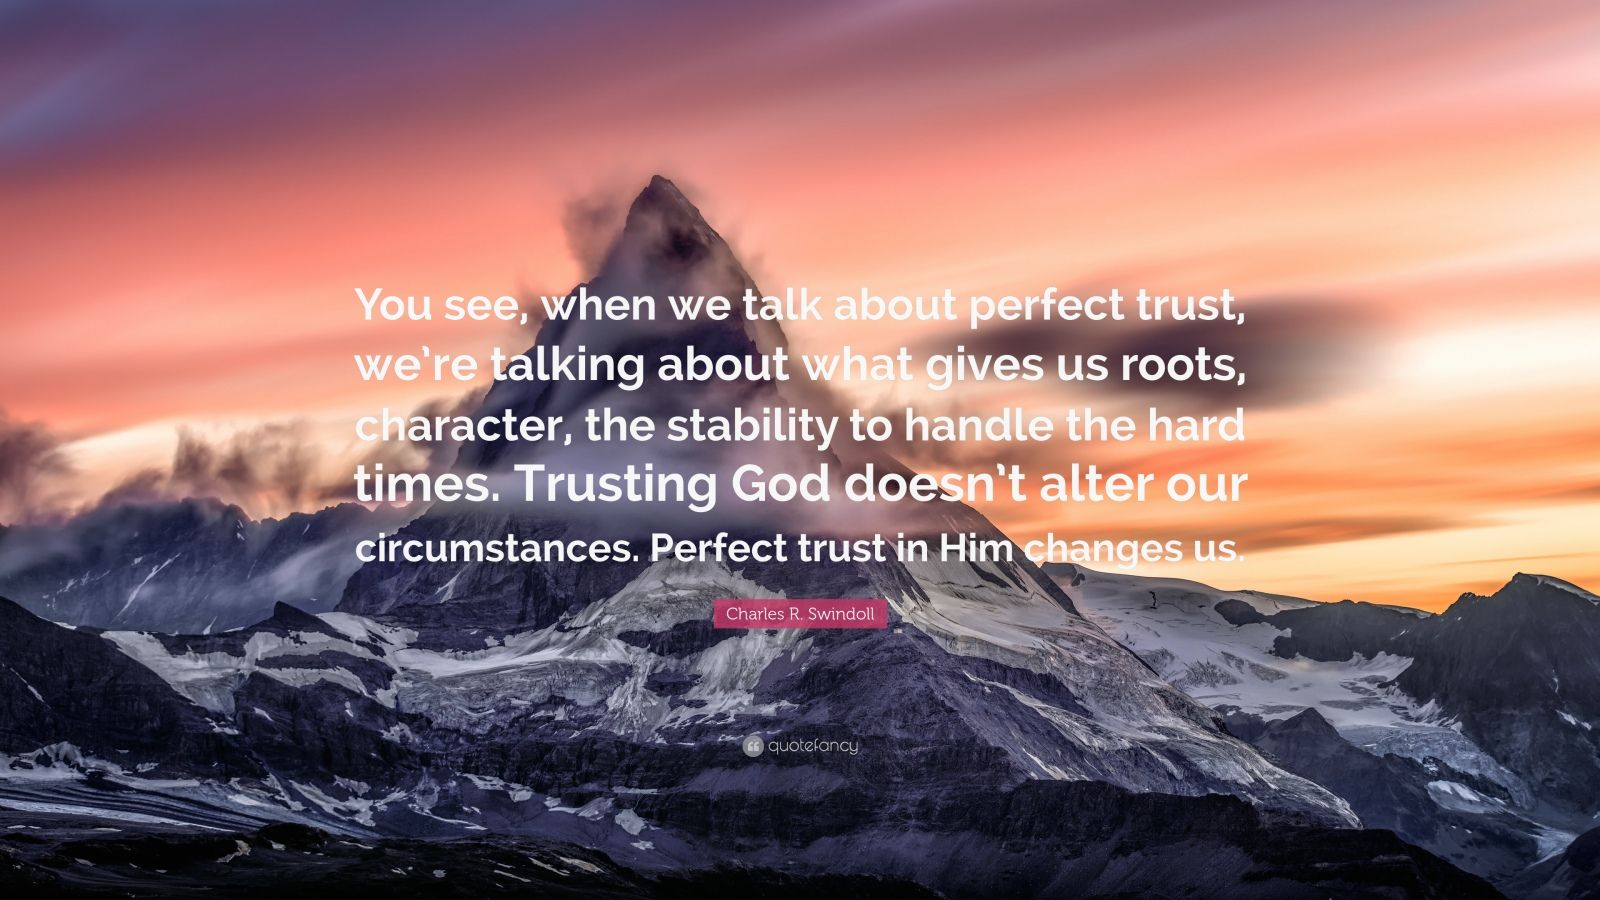 "Charles R. Swindoll Quote: ""You see, when we talk about perfect trust, we're talking about what gives us roots, character, the stability to handle the hard times. Trusting God doesn't alter our circumstances. Perfect trust in Him changes us."""